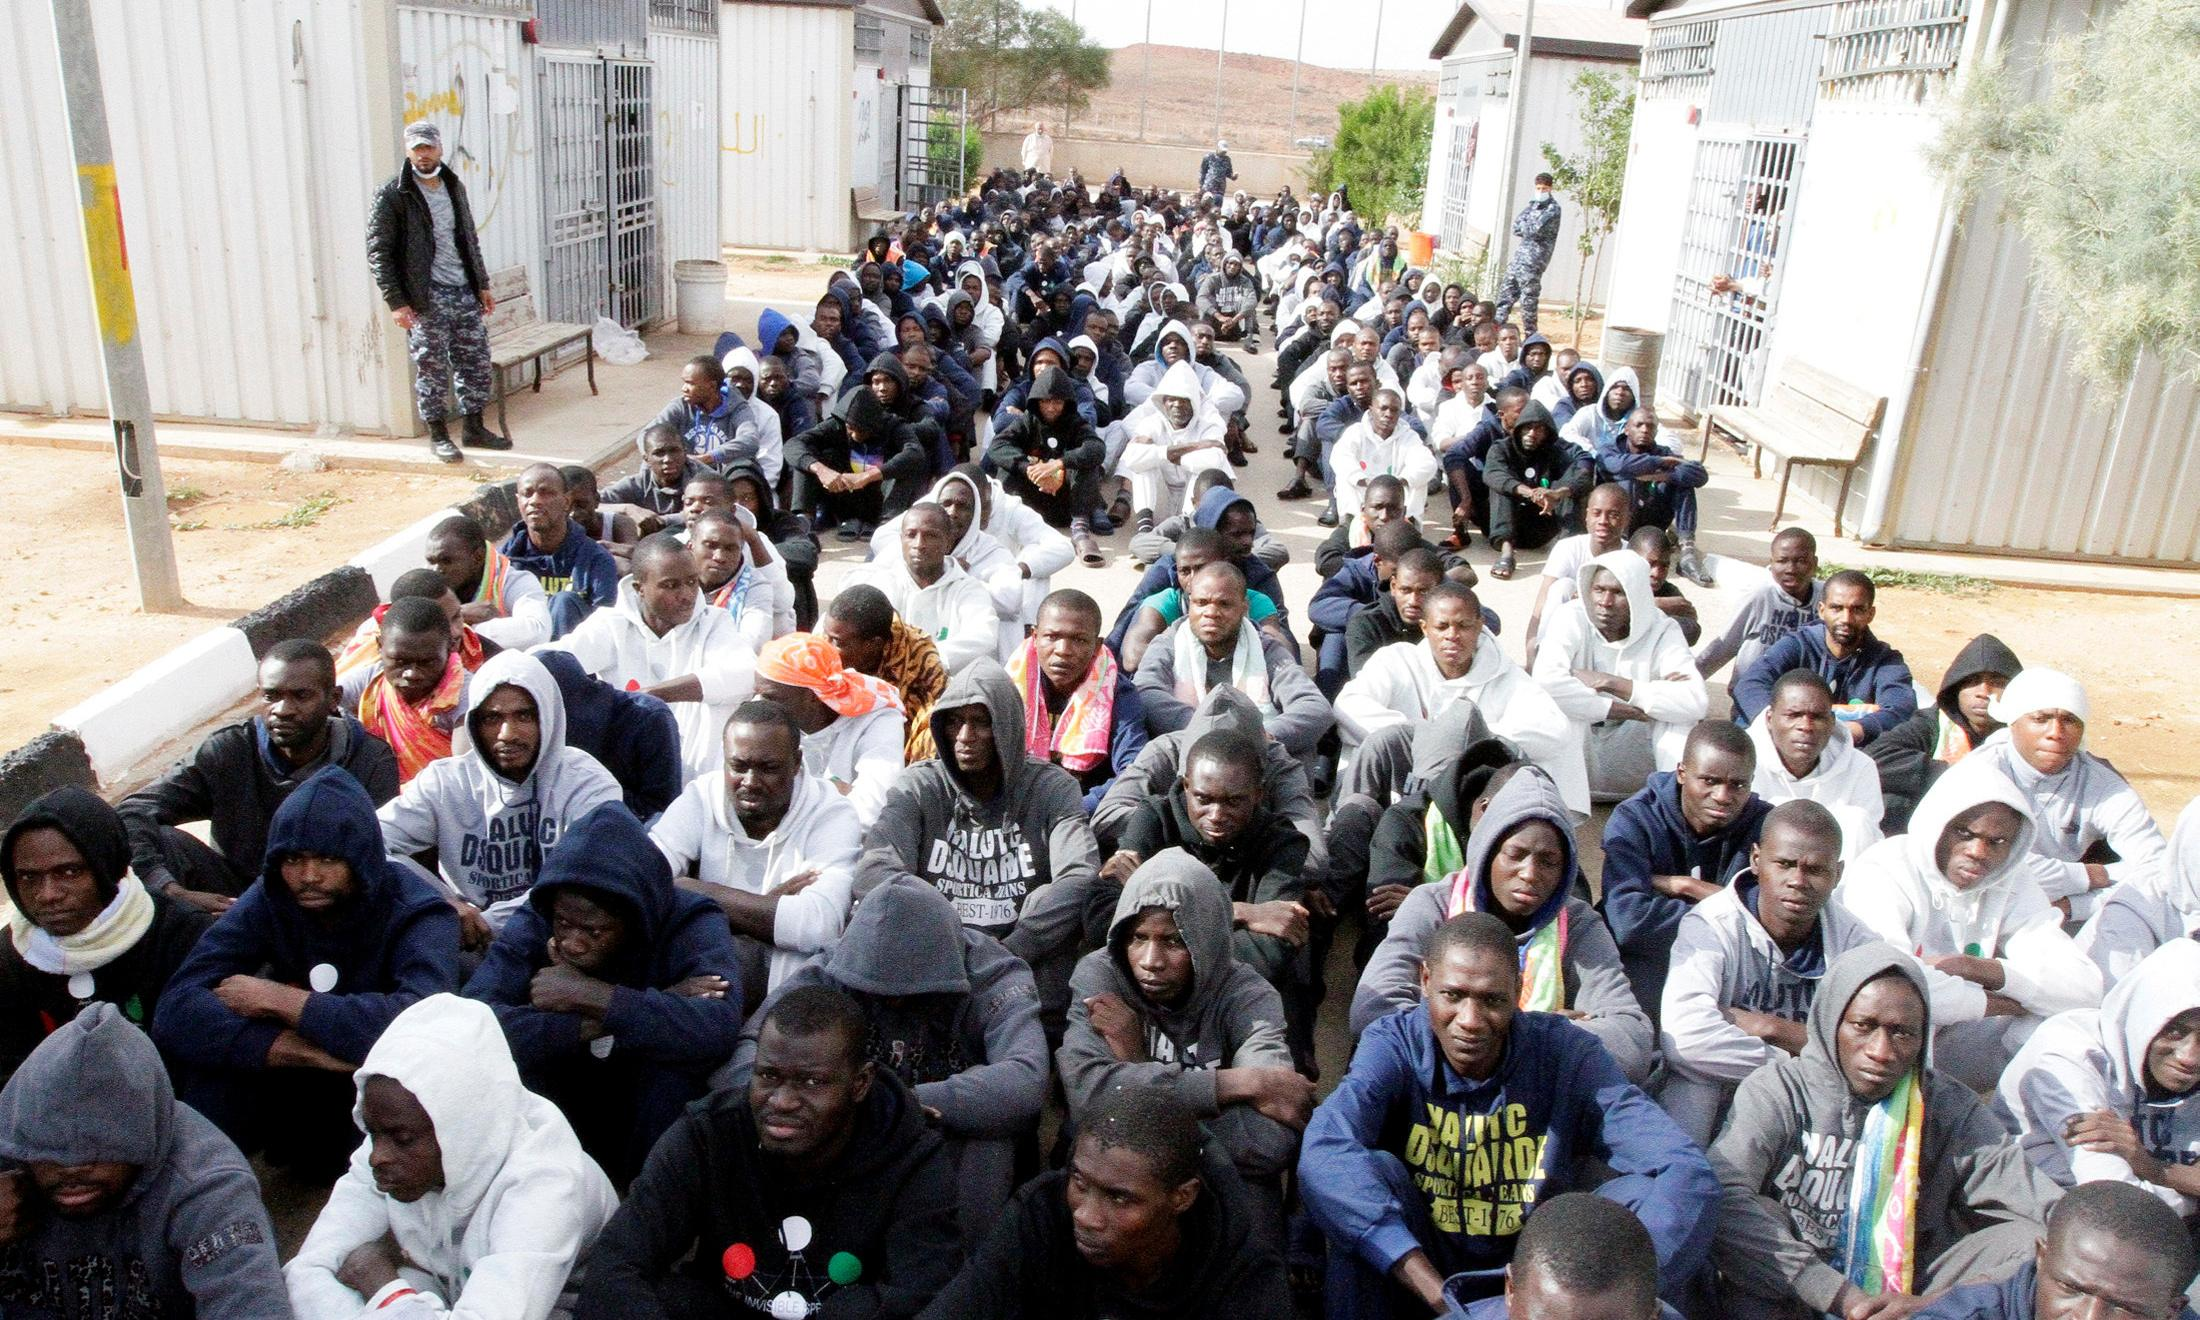 Migrants detained in Libya for profit, leaked EU report reveals